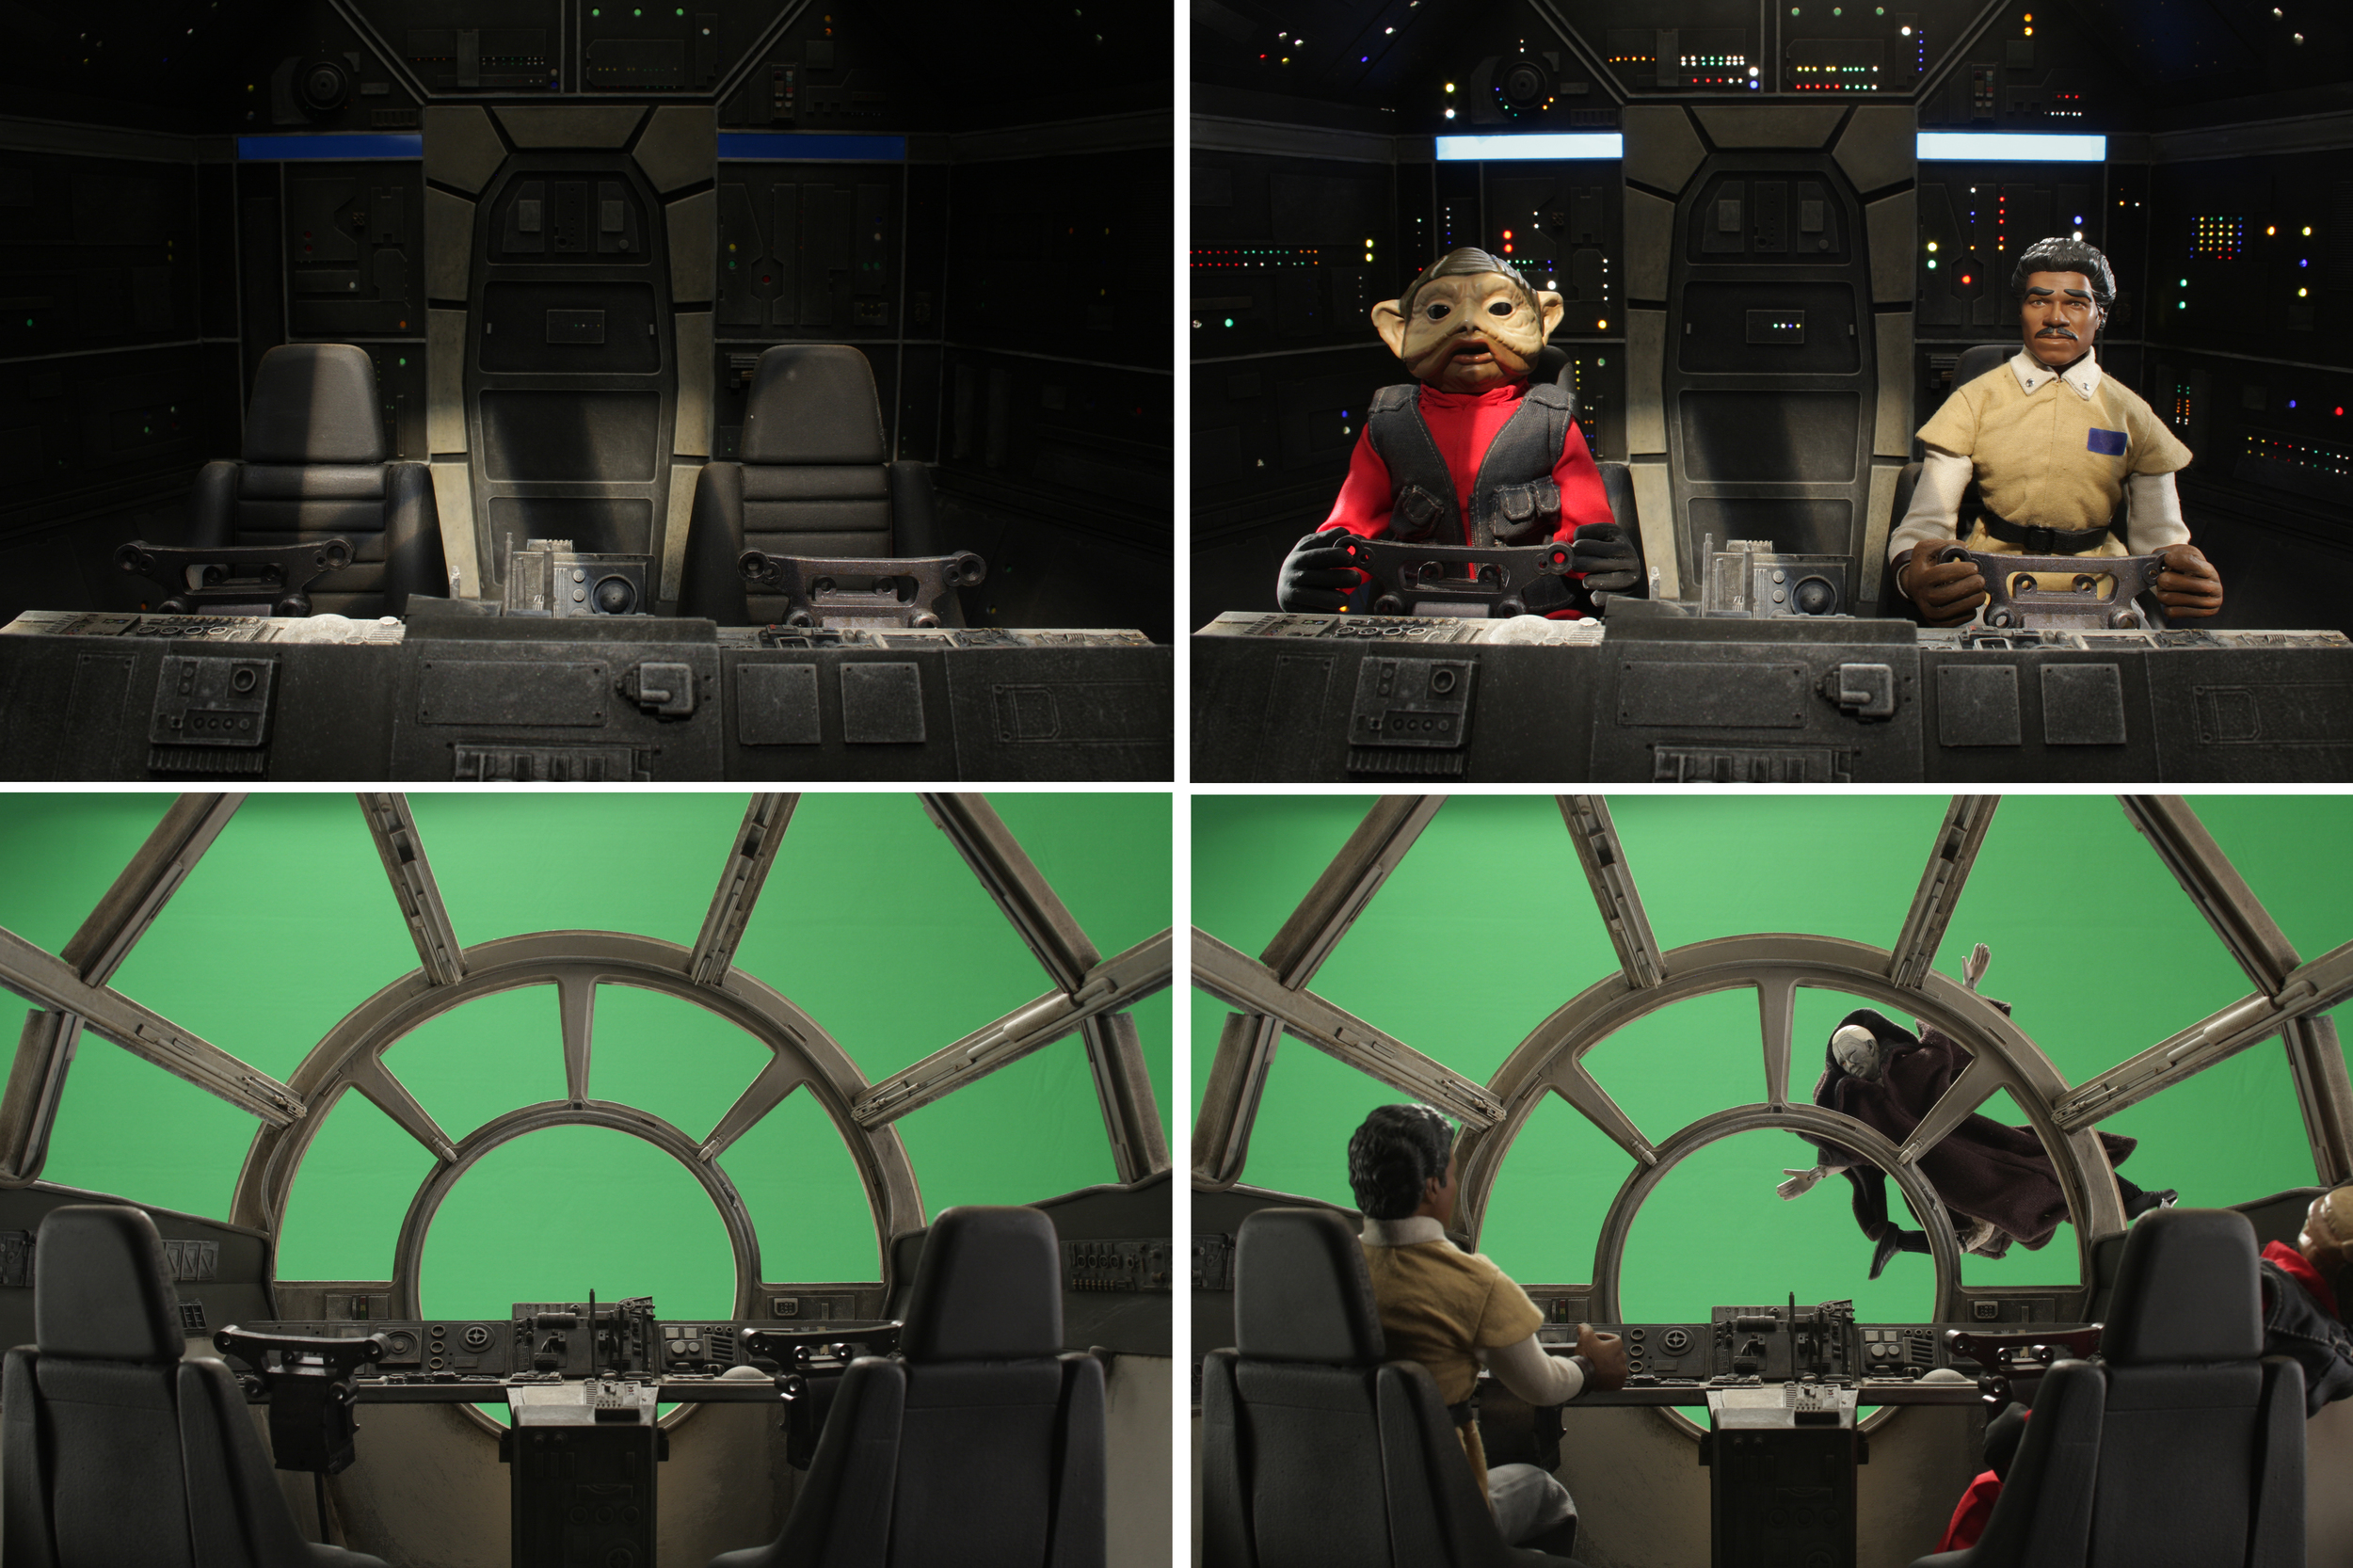 Robot Chicken Star Wars 3 Image 71.jpg